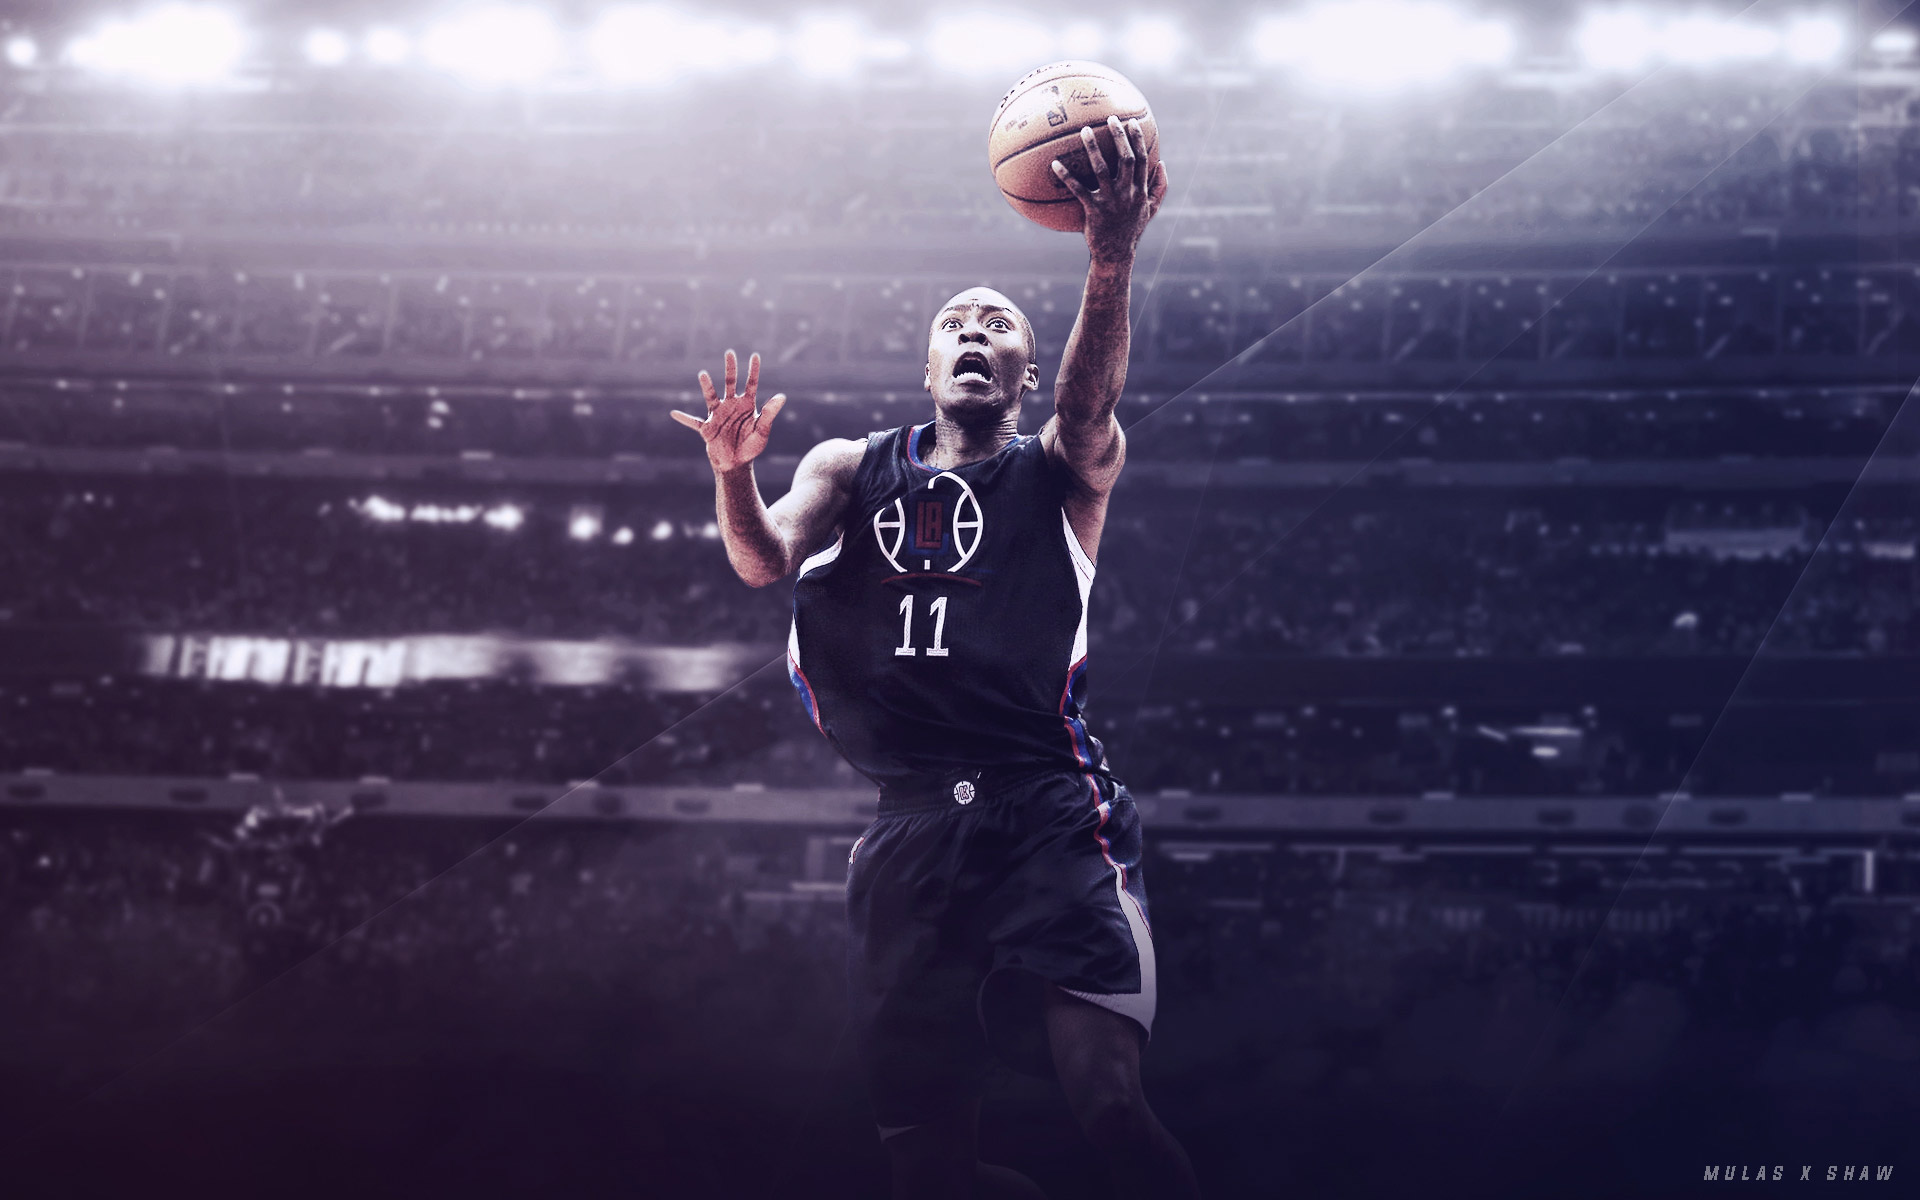 Jamal Crawford Clippers 2016 Wallpaper